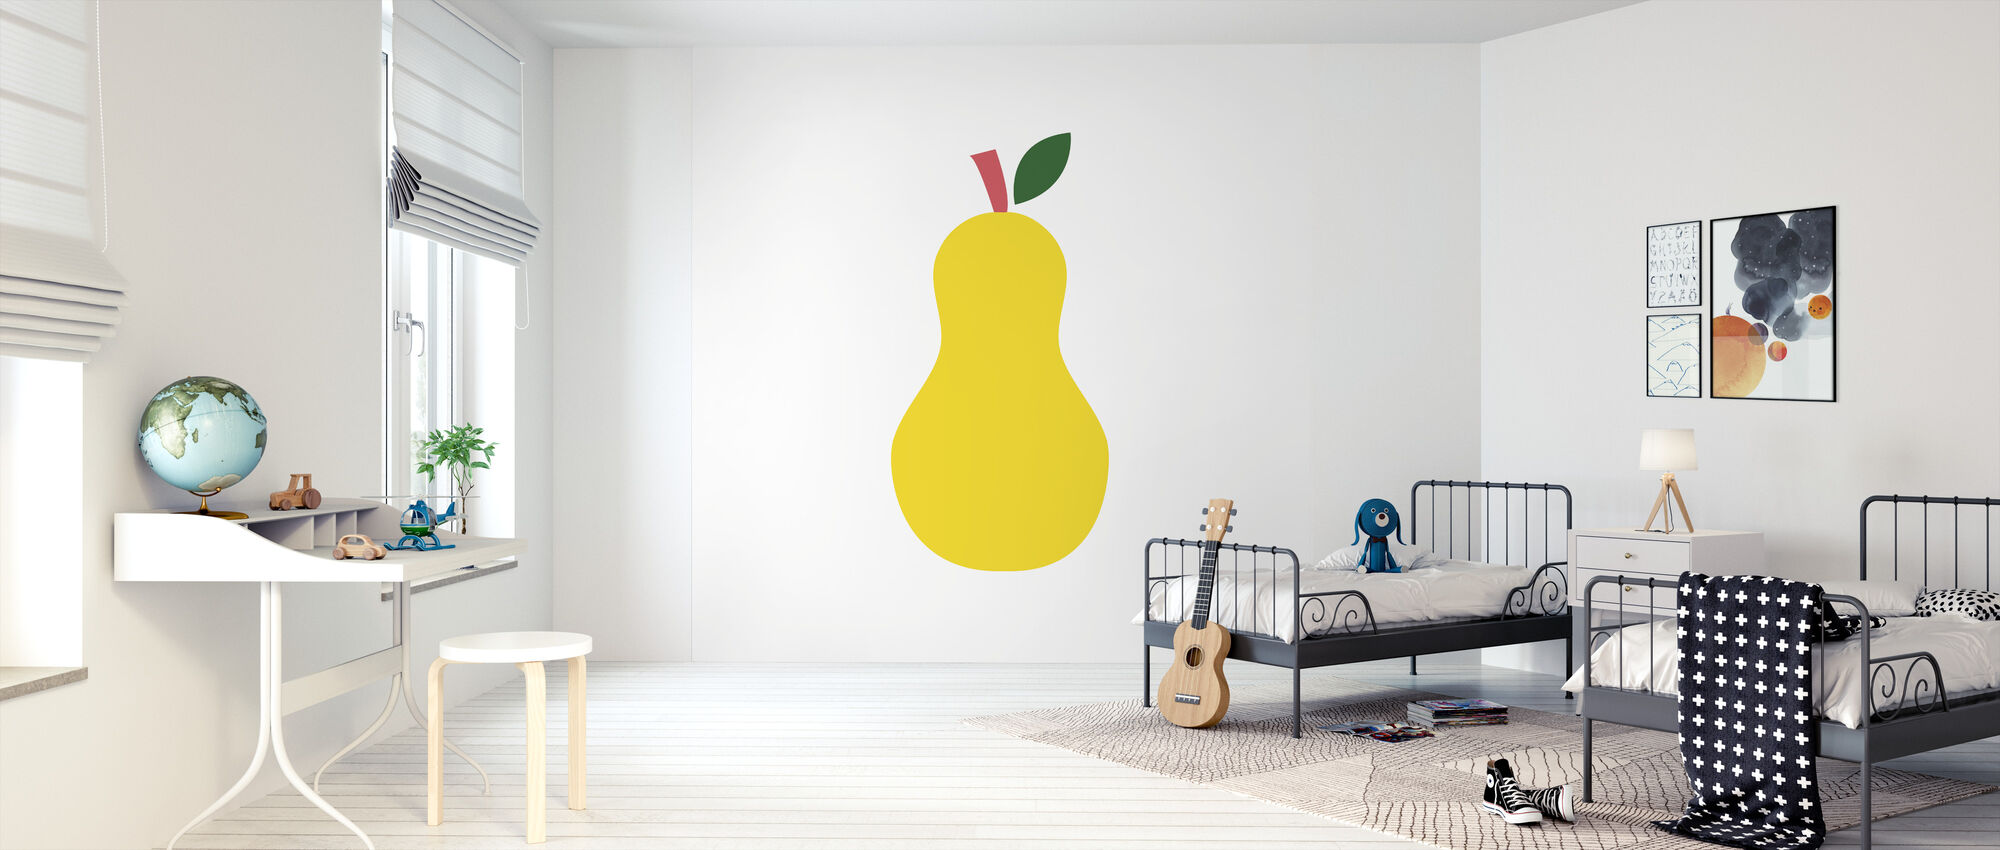 Yellow Pear - Wallpaper - Kids Room